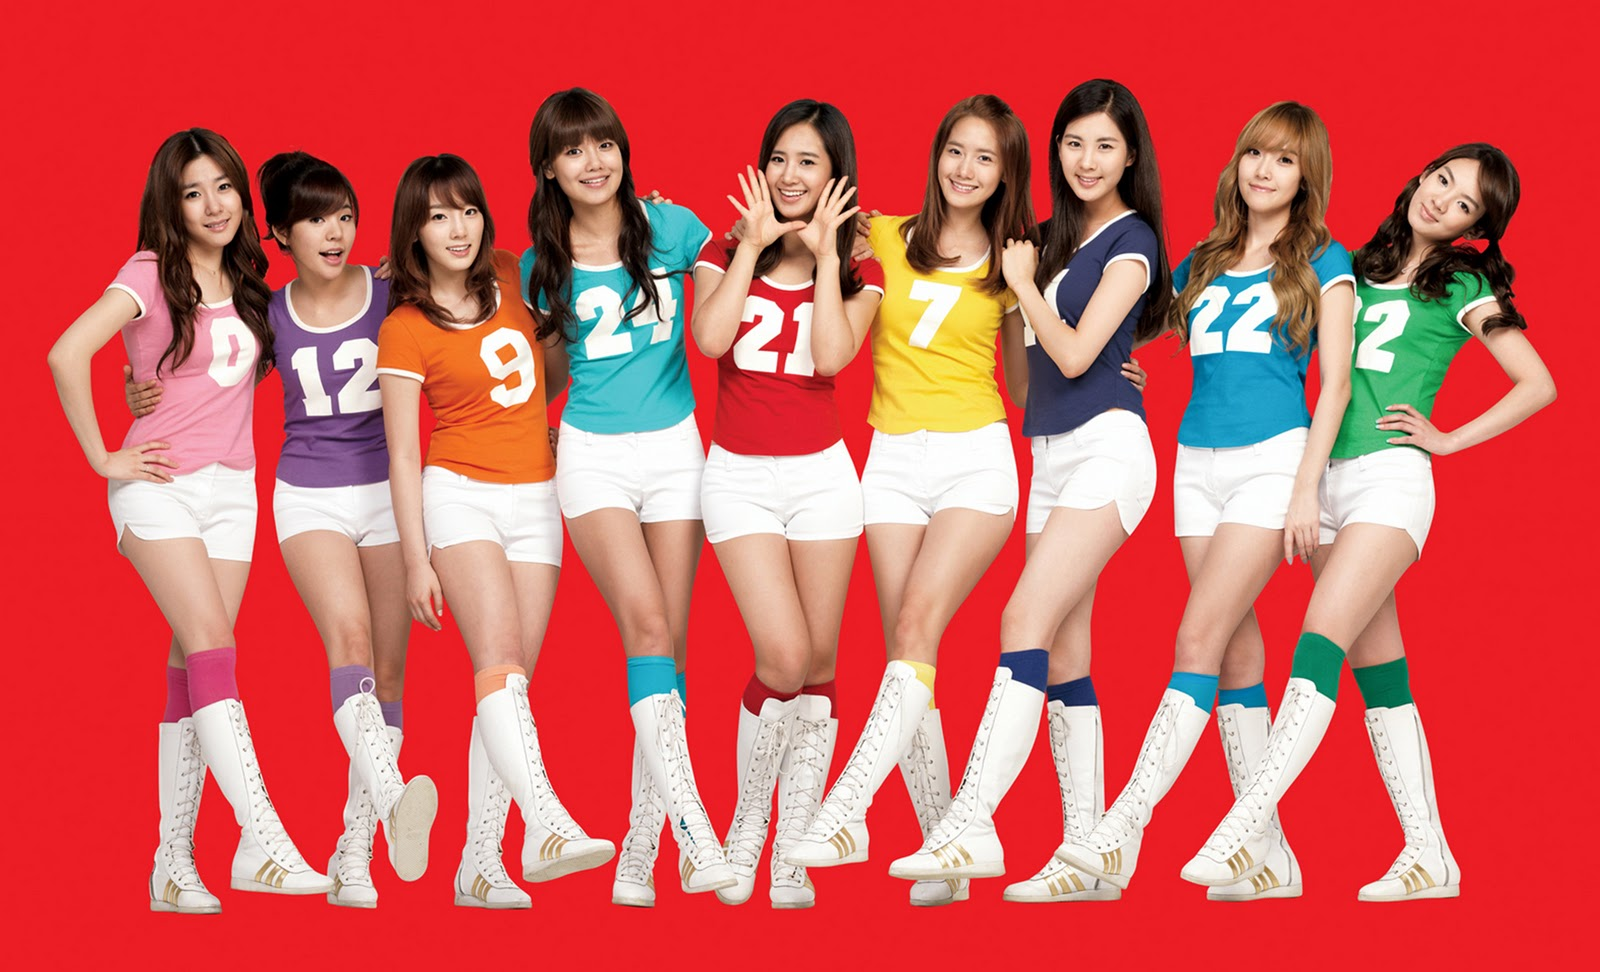 snsd girls generation - photo #12